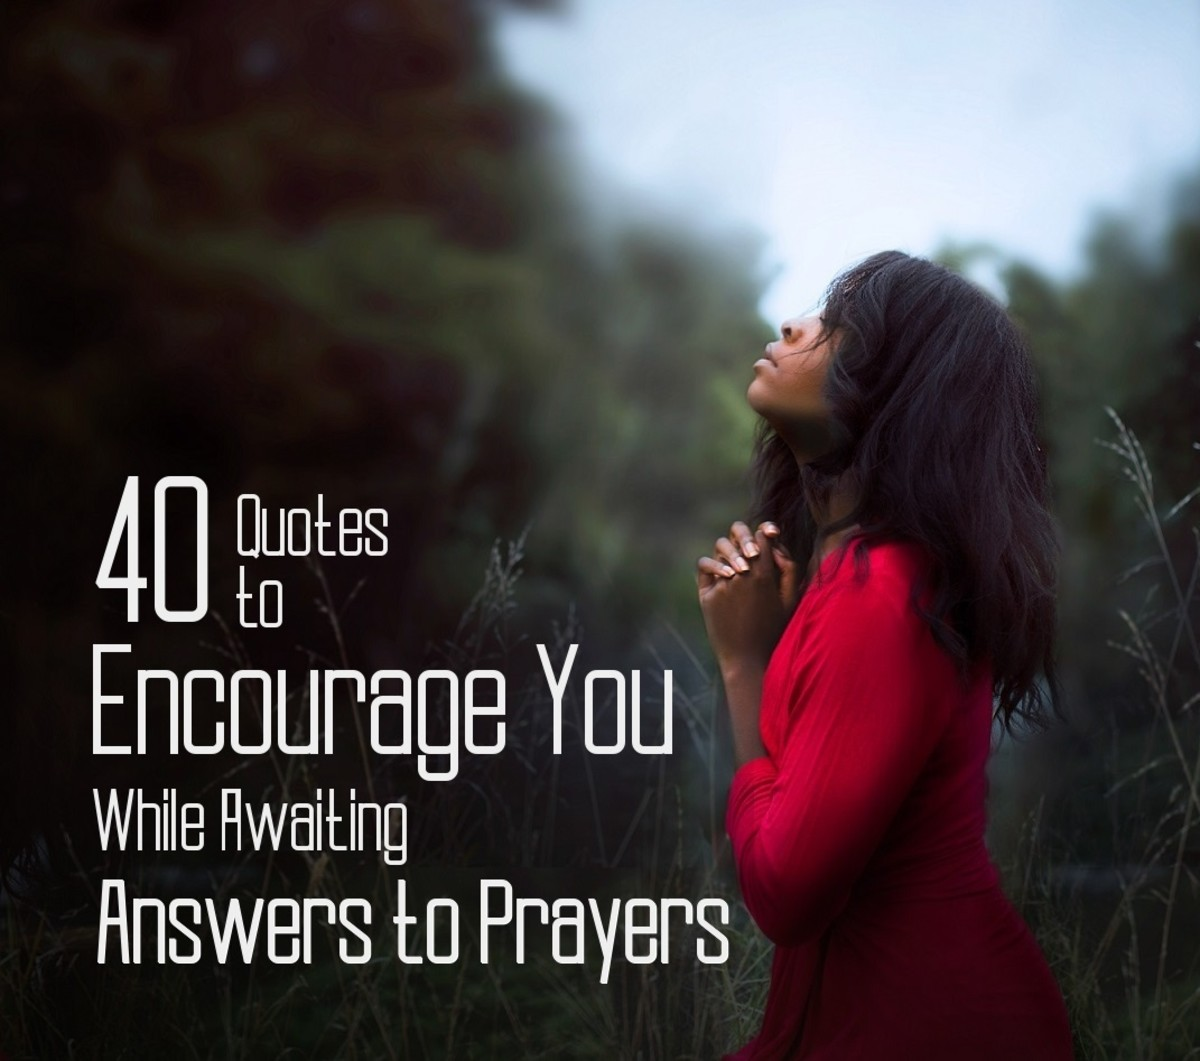 Be encouraged while you await answers to prayers.